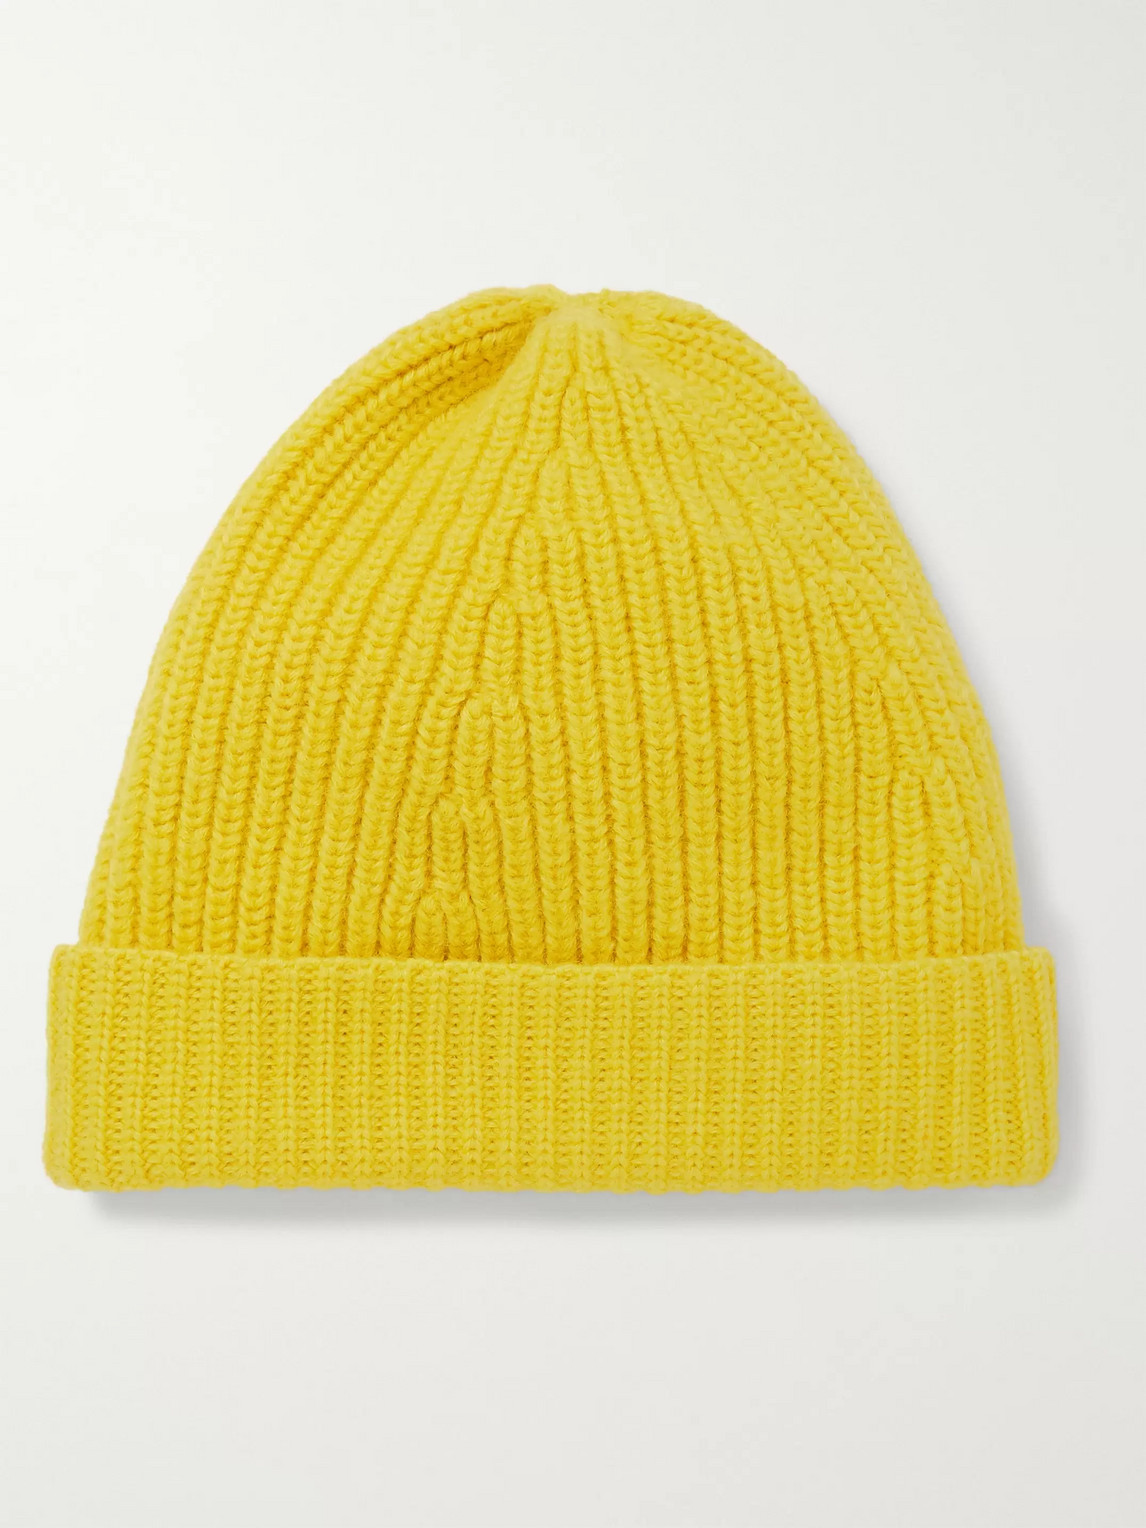 The Workers Club Ribbed Merino Wool Beanie In Yellow